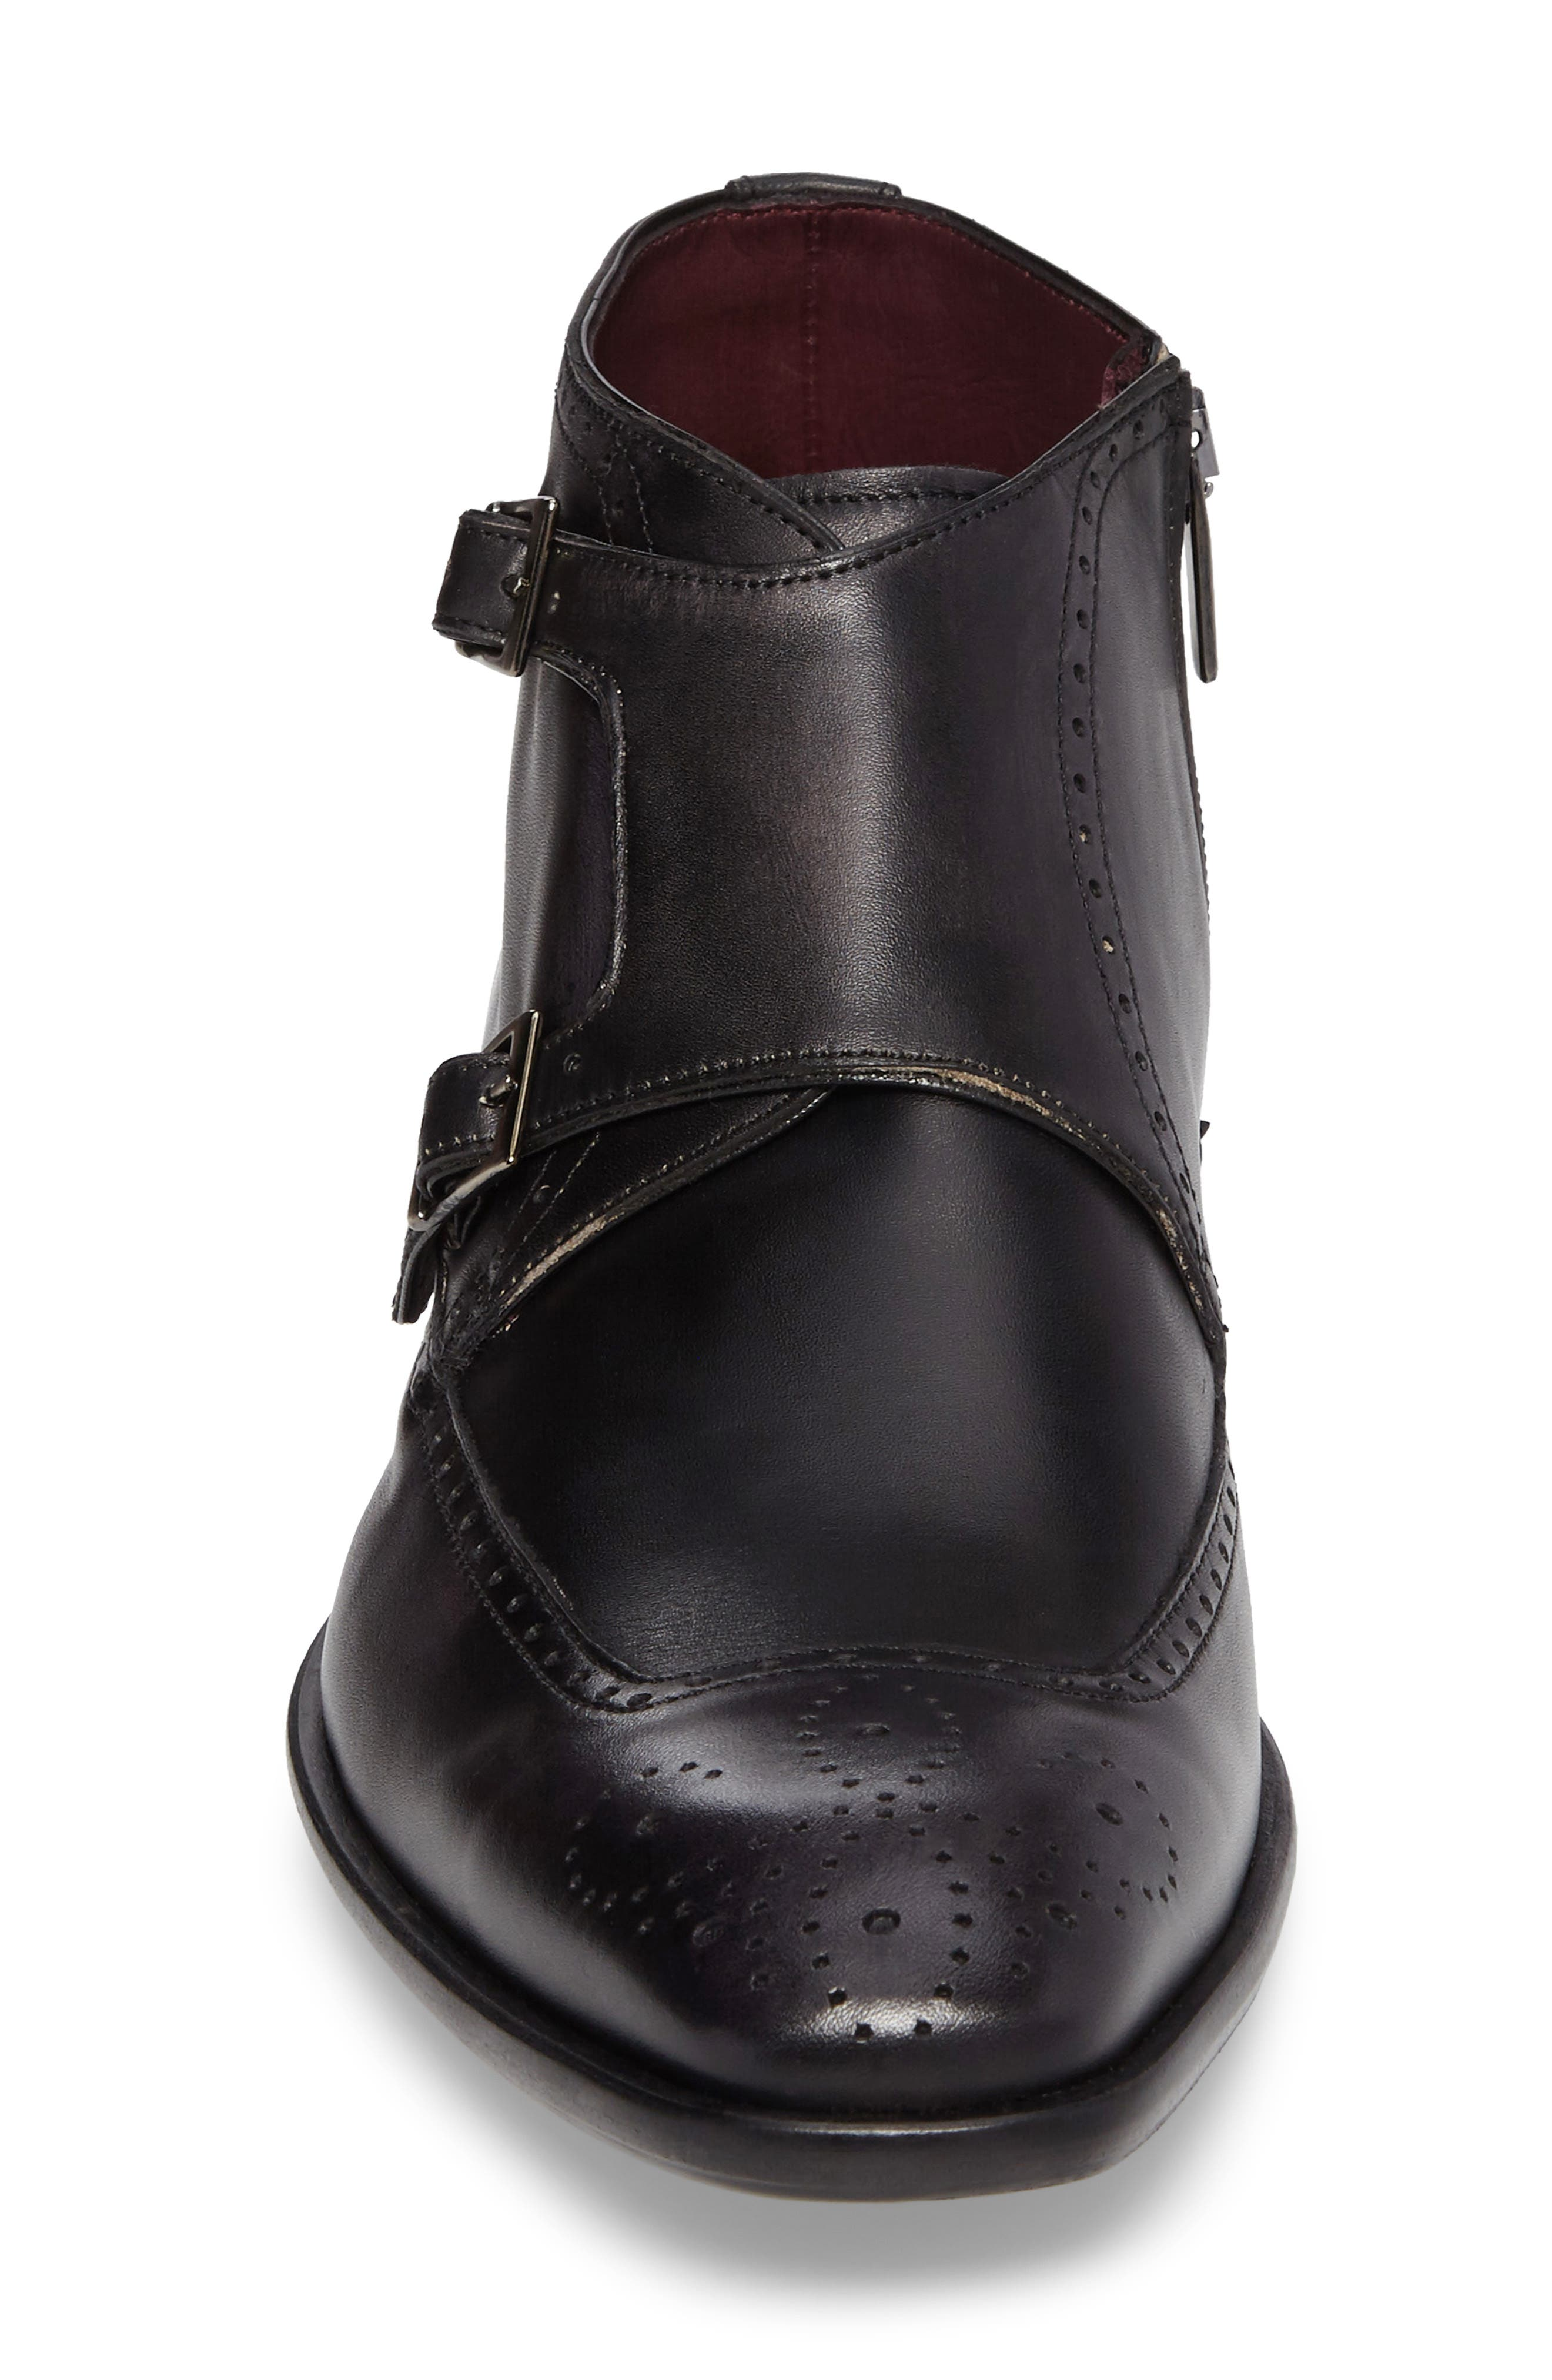 Taberna Double Monk Strap Boot,                             Alternate thumbnail 4, color,                             GRAPHITE LEATHER